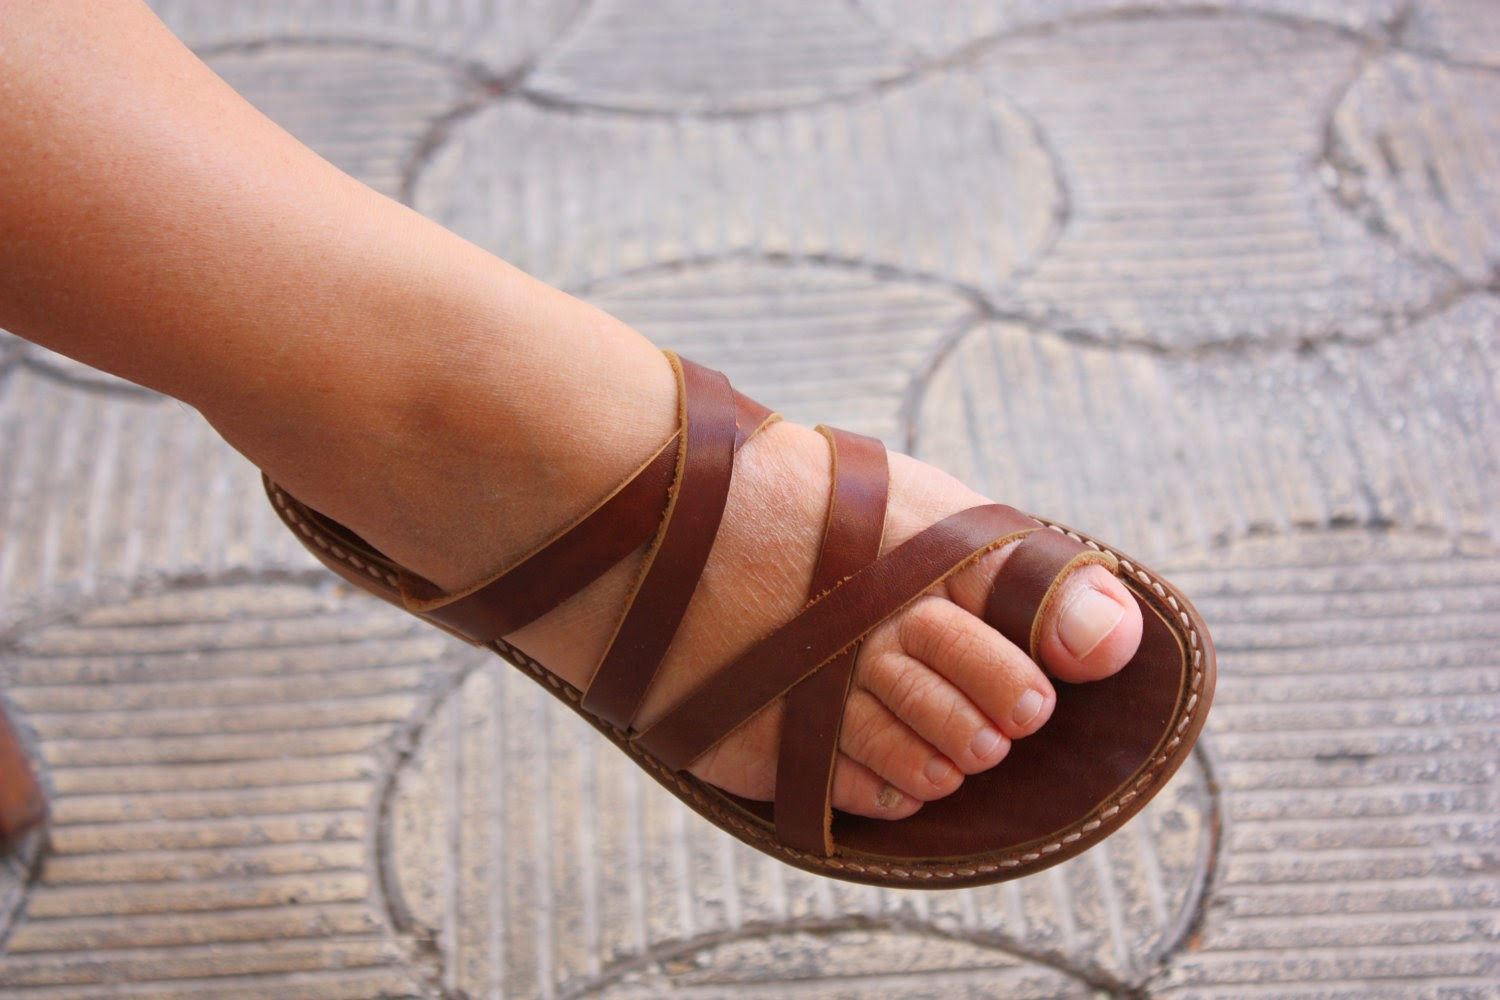 Leather sandals - Fashion of Indian.jpg